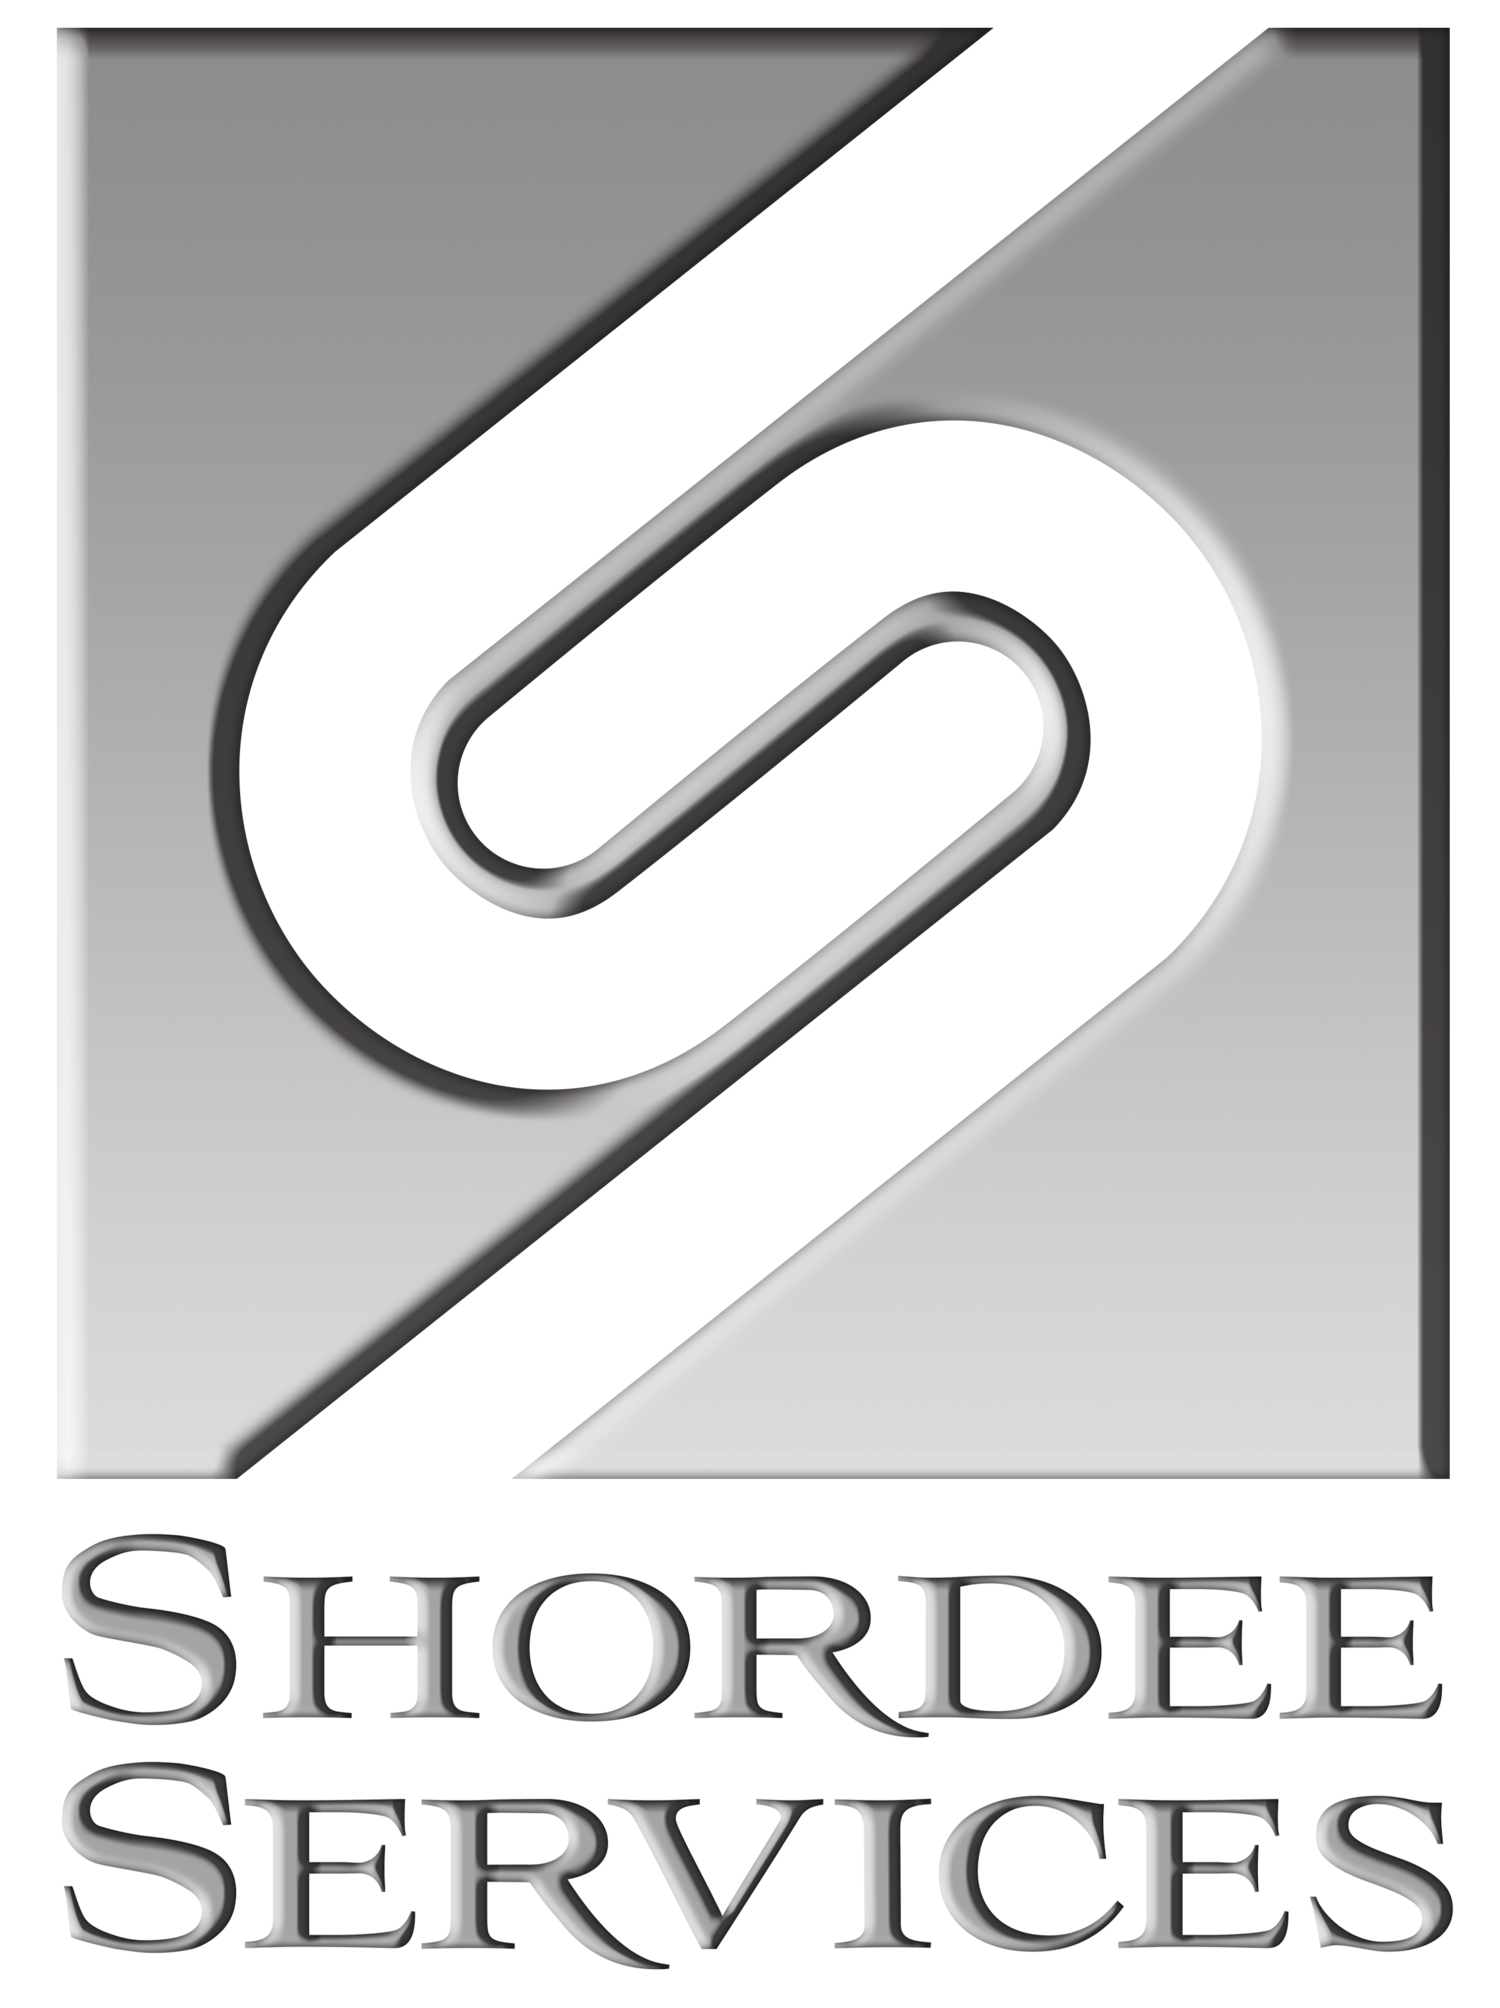 Shordee Services Residential Power Generation